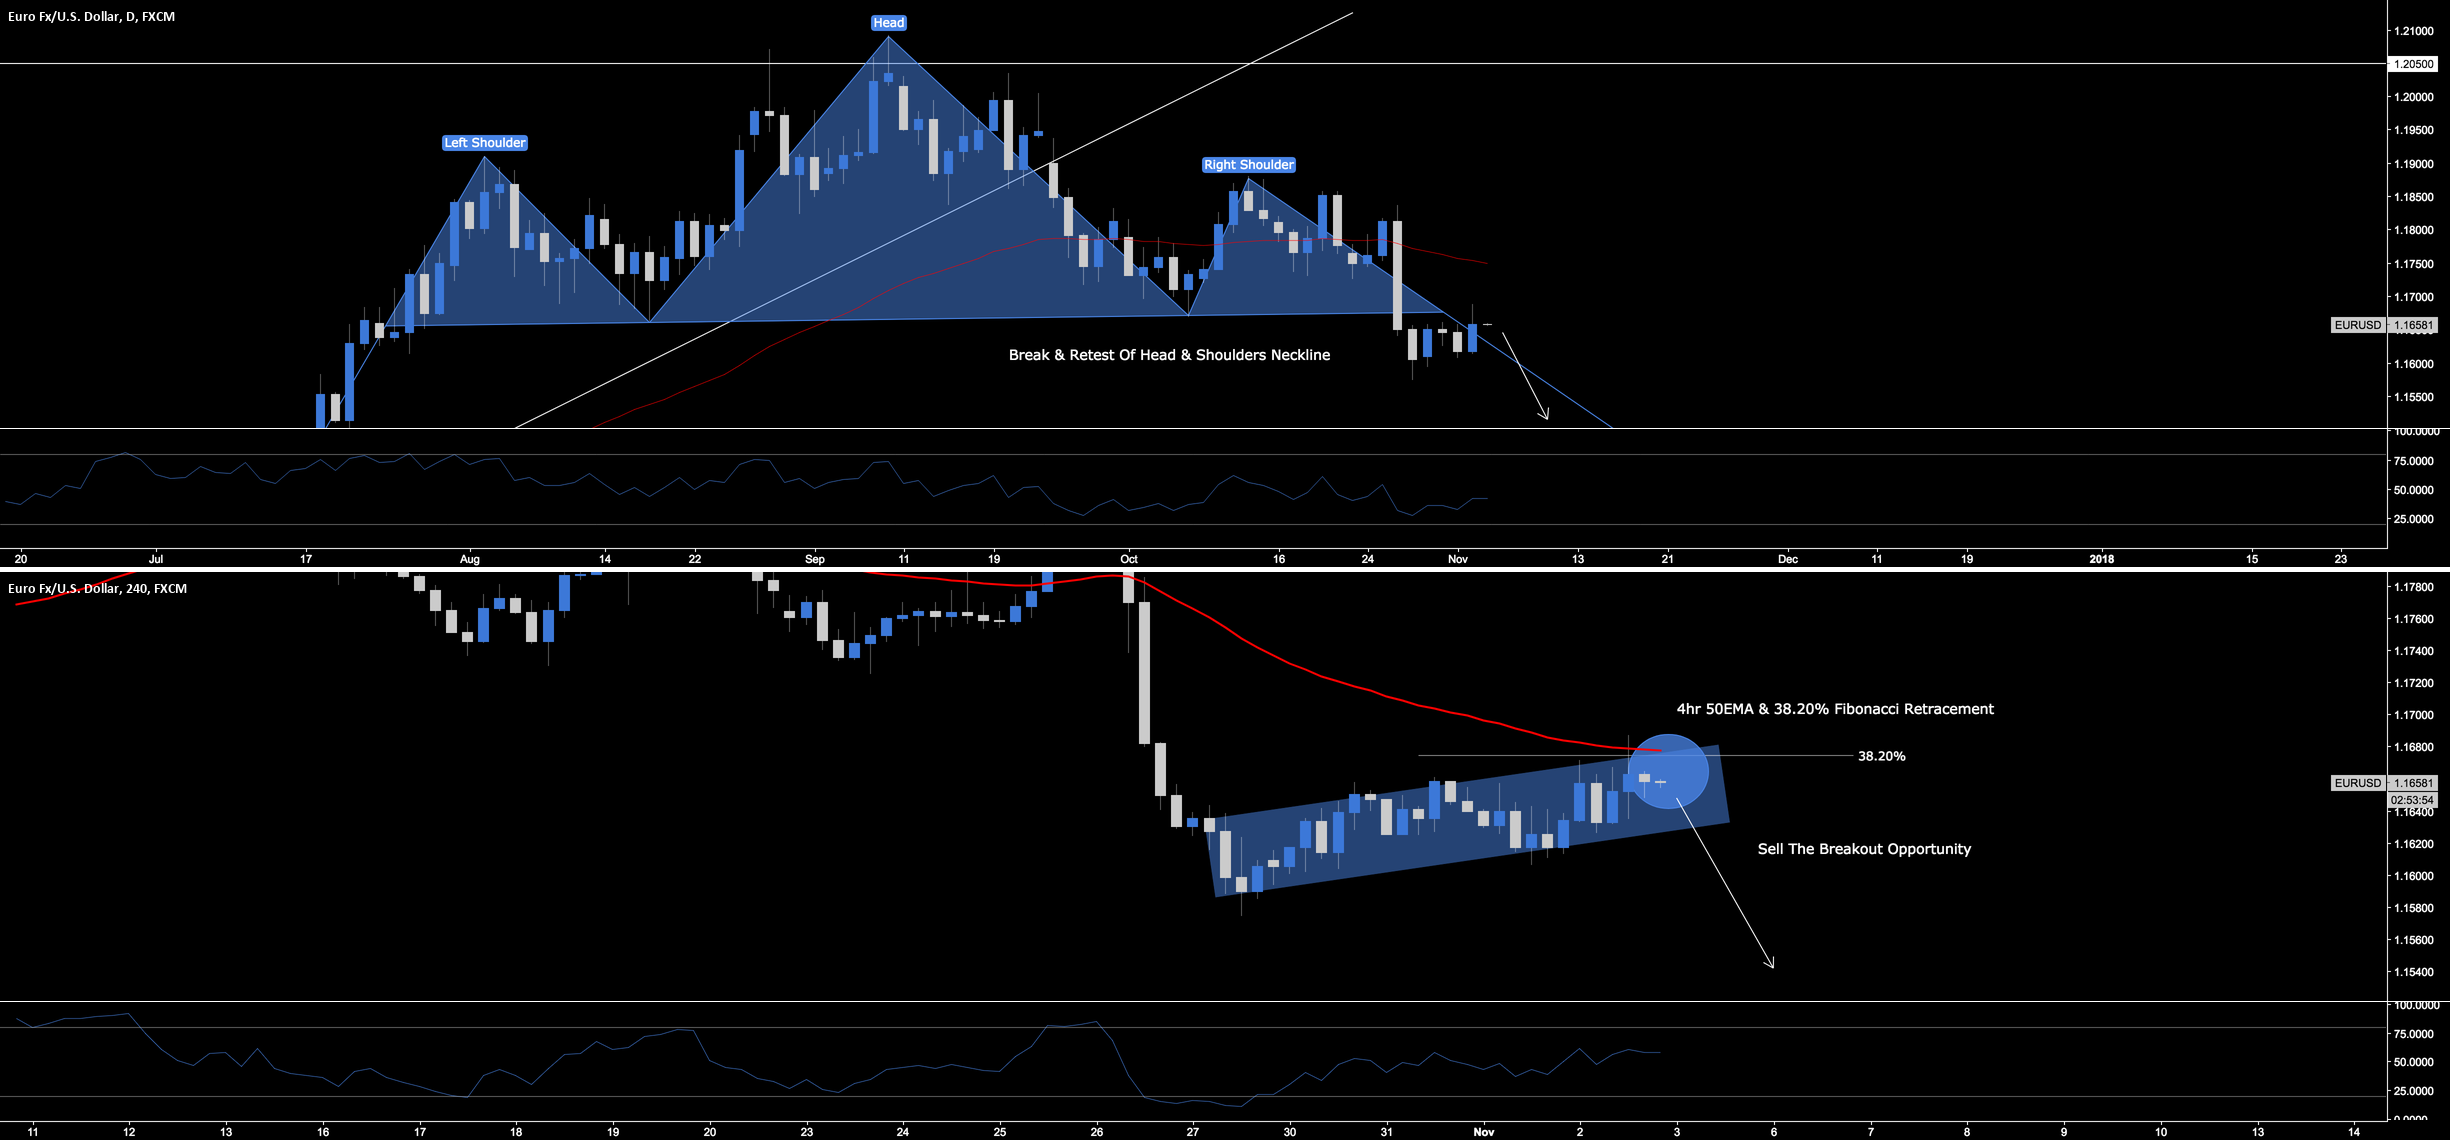 EUR.USD - Sell The Breakout